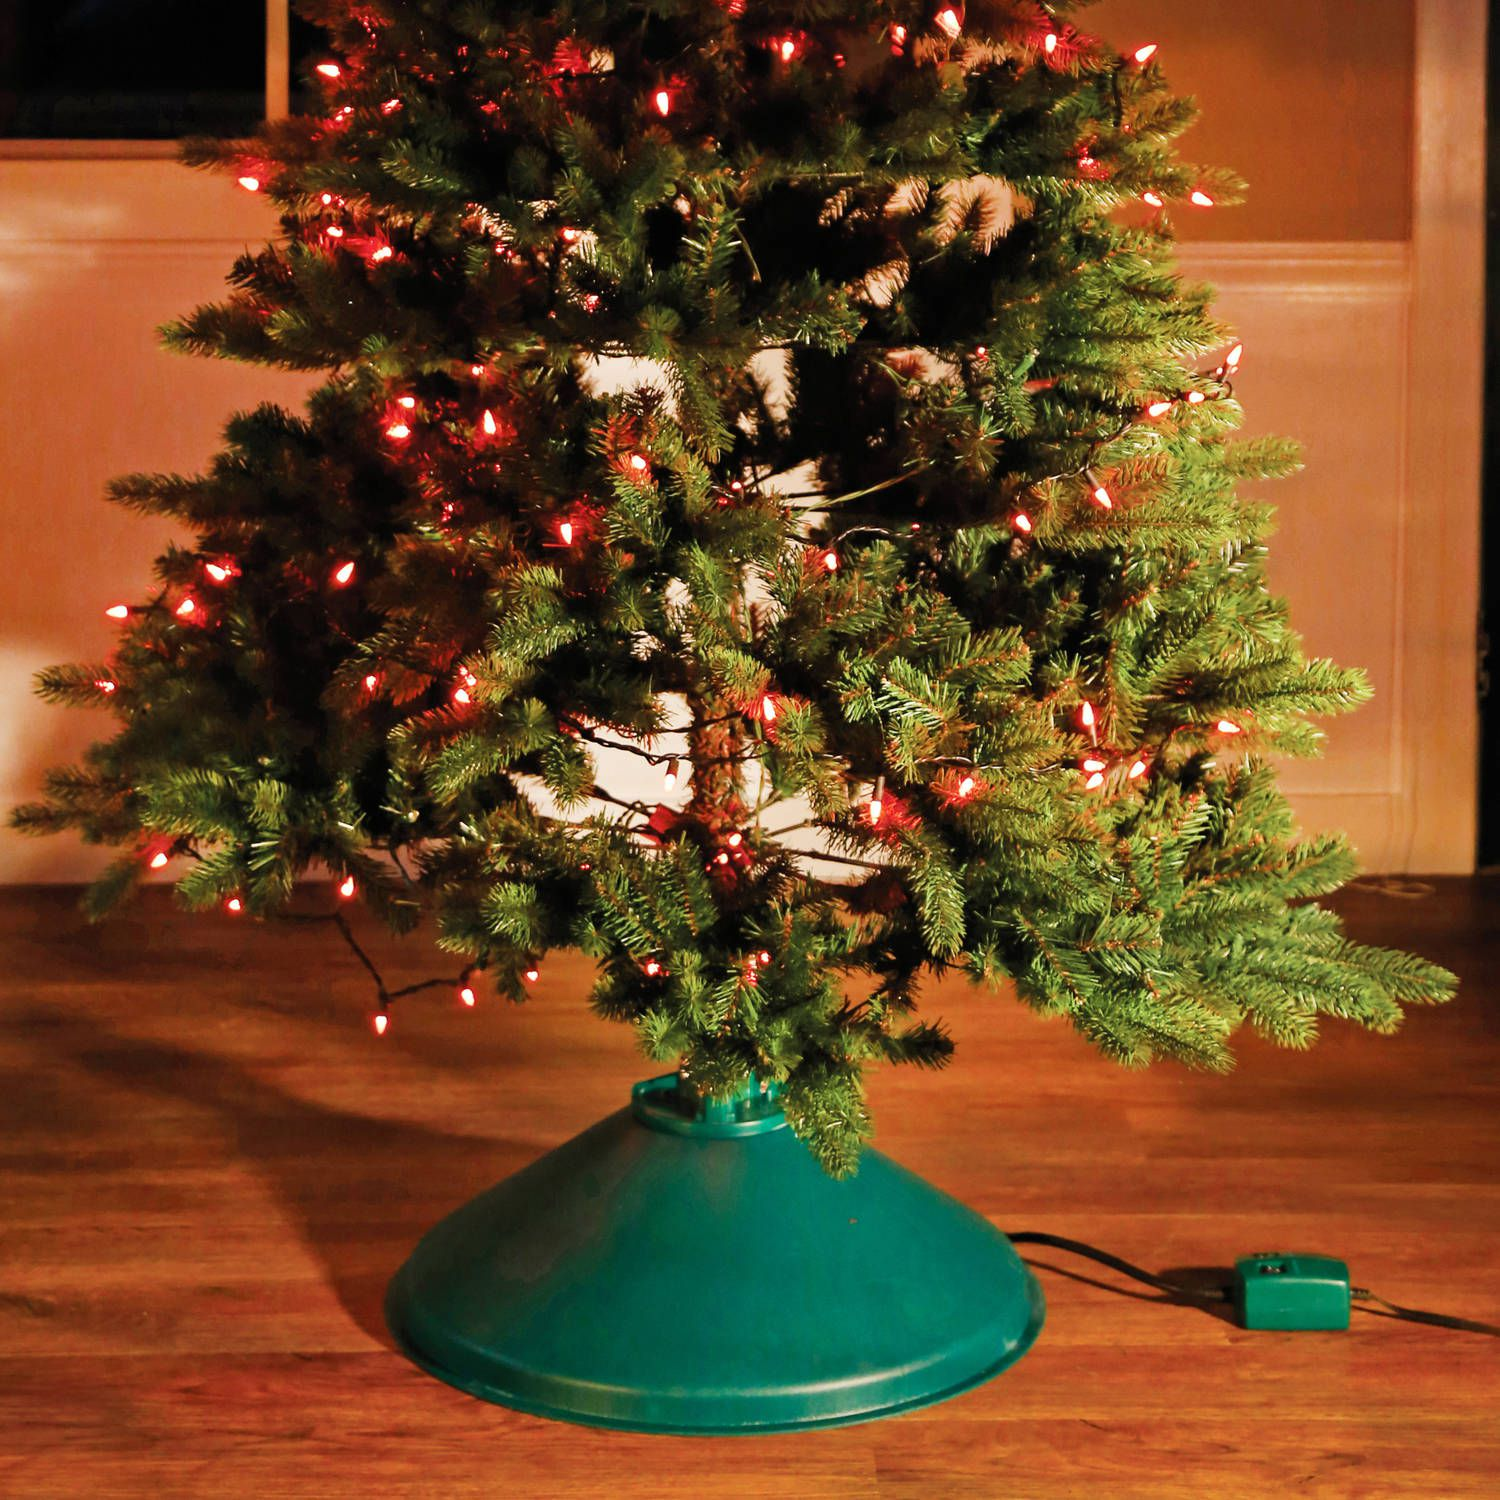 The 9 Best Christmas Tree Stands to Buy in 2018